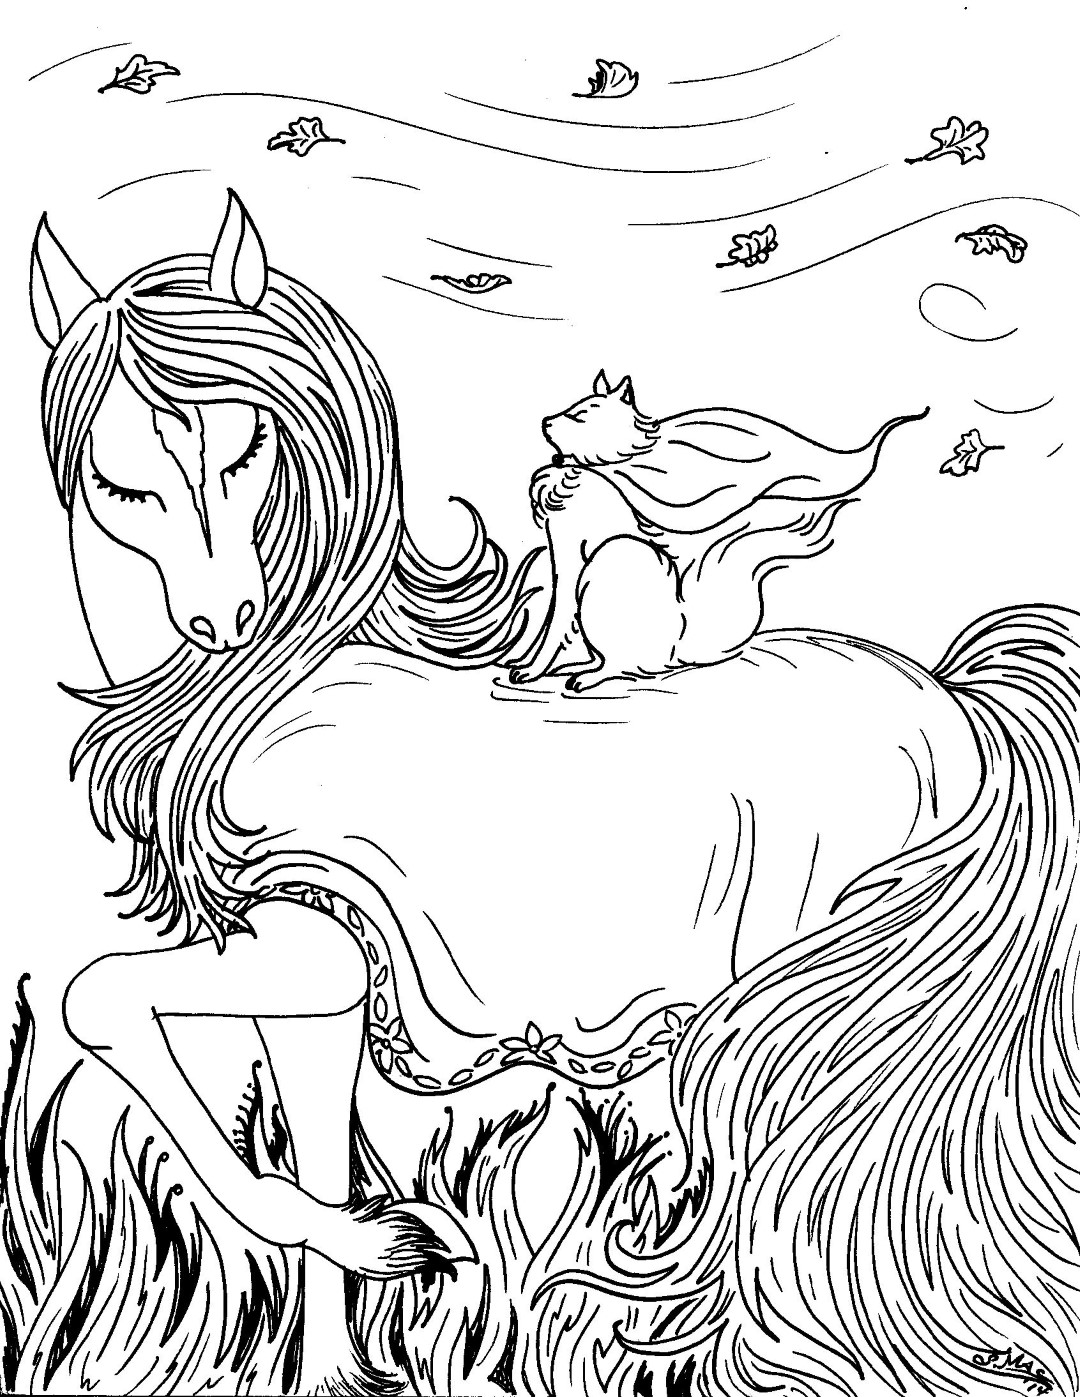 Horse and Cat Coloring Page